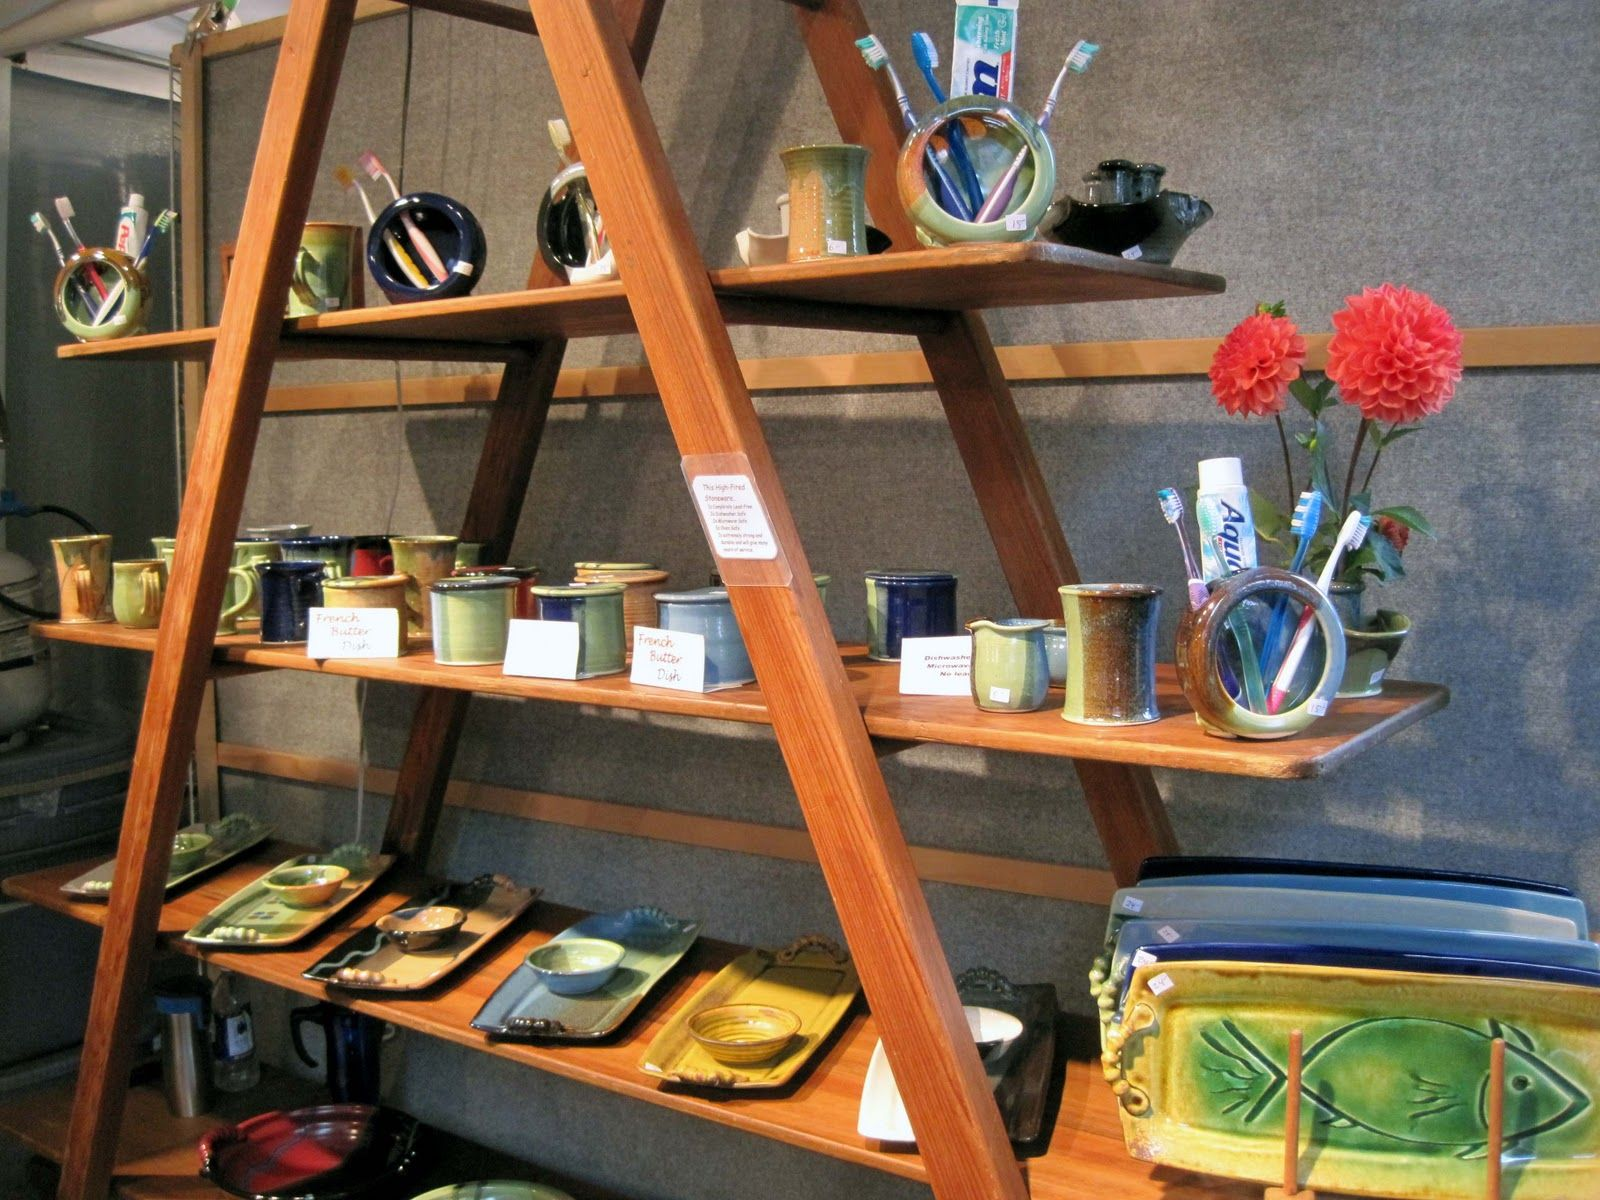 shelf display at a market booth - Google Search